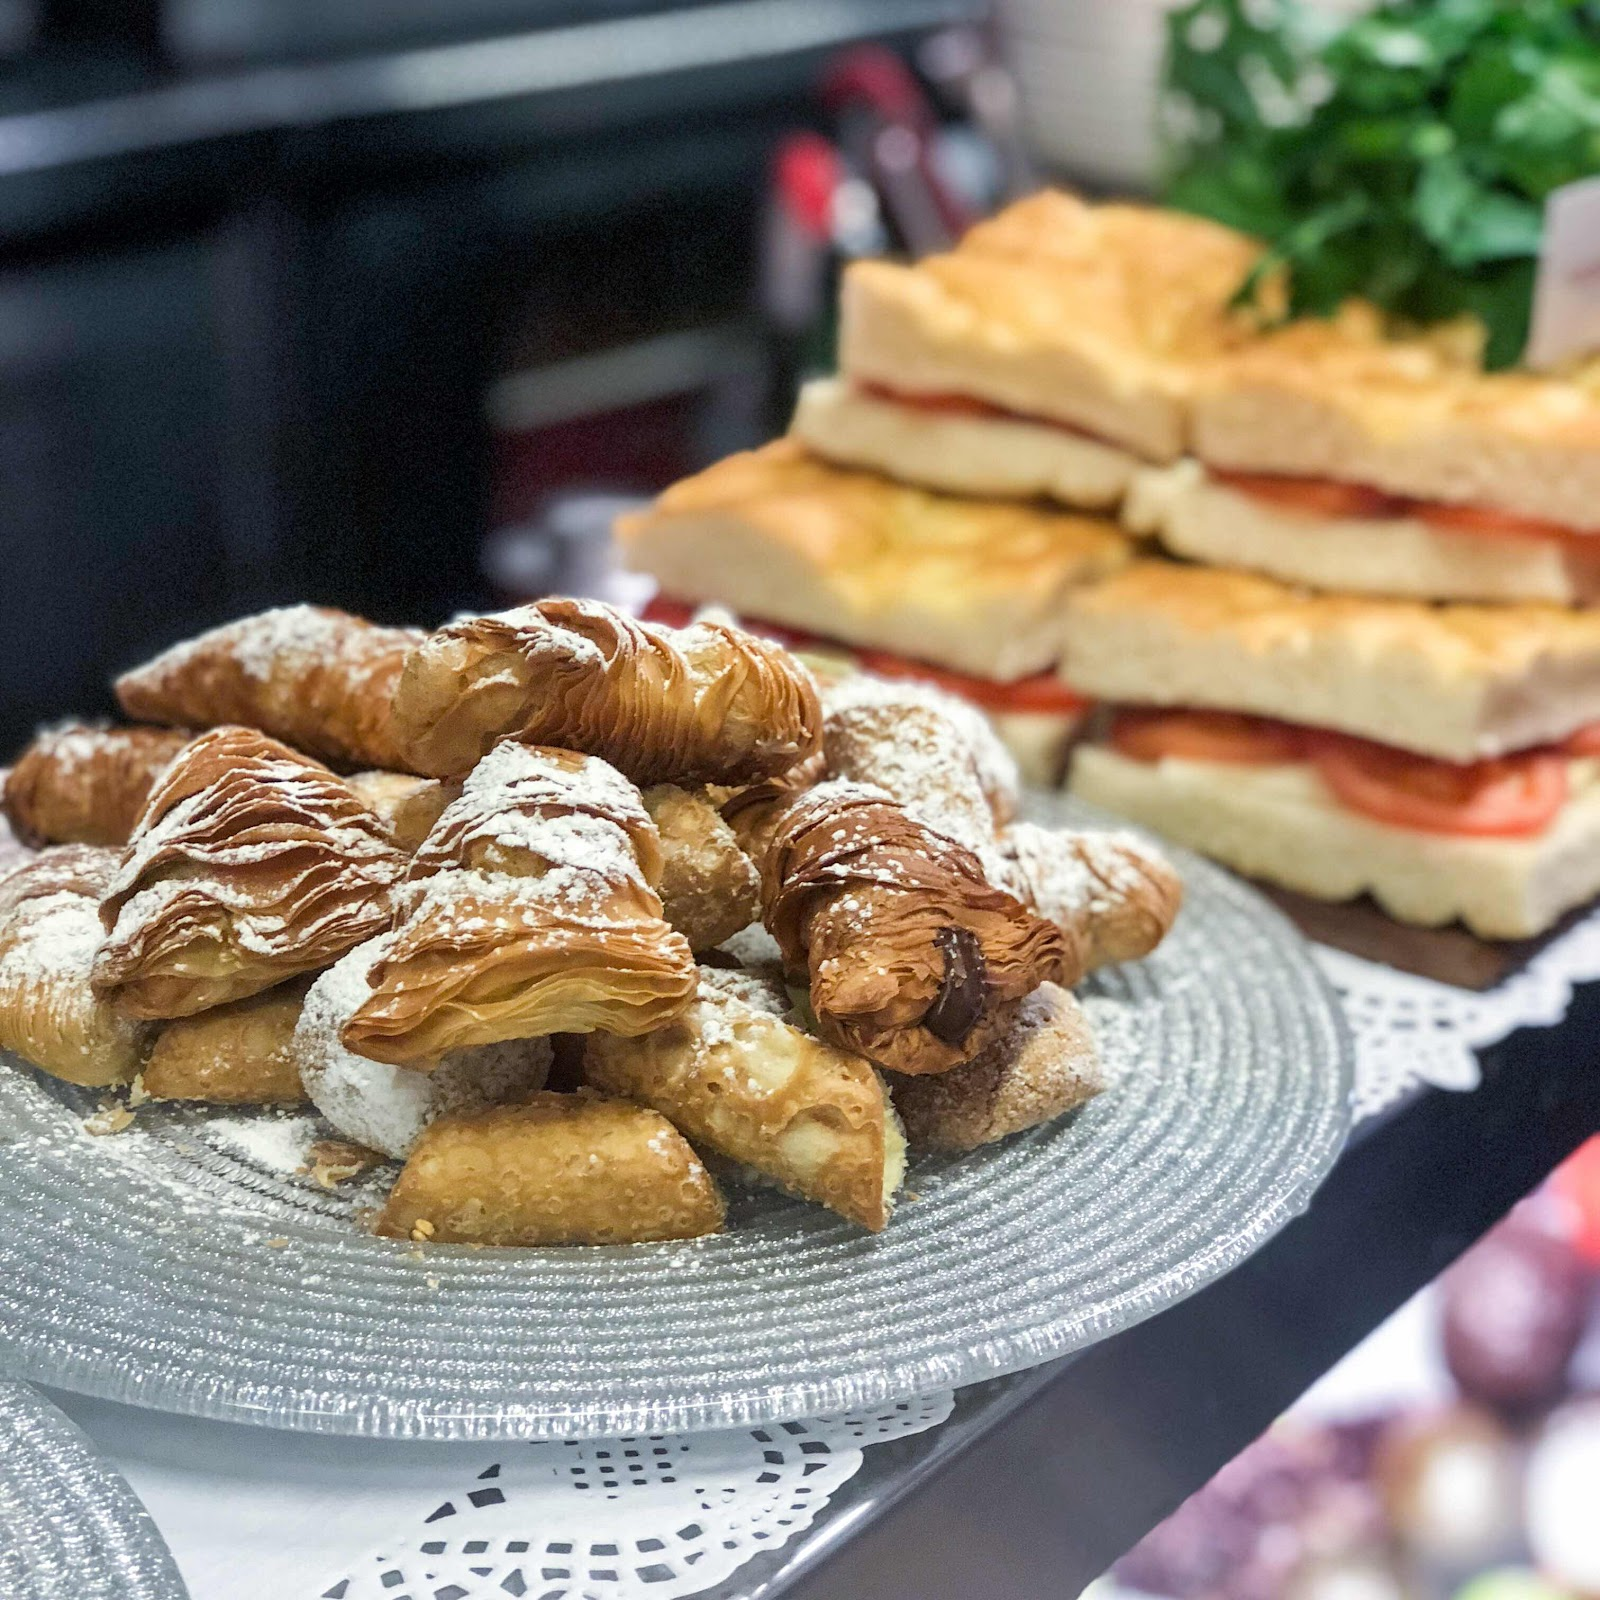 london-lifestyle-blog-top-10-things-to-do-in-soho-london-bar-italia-cannoli